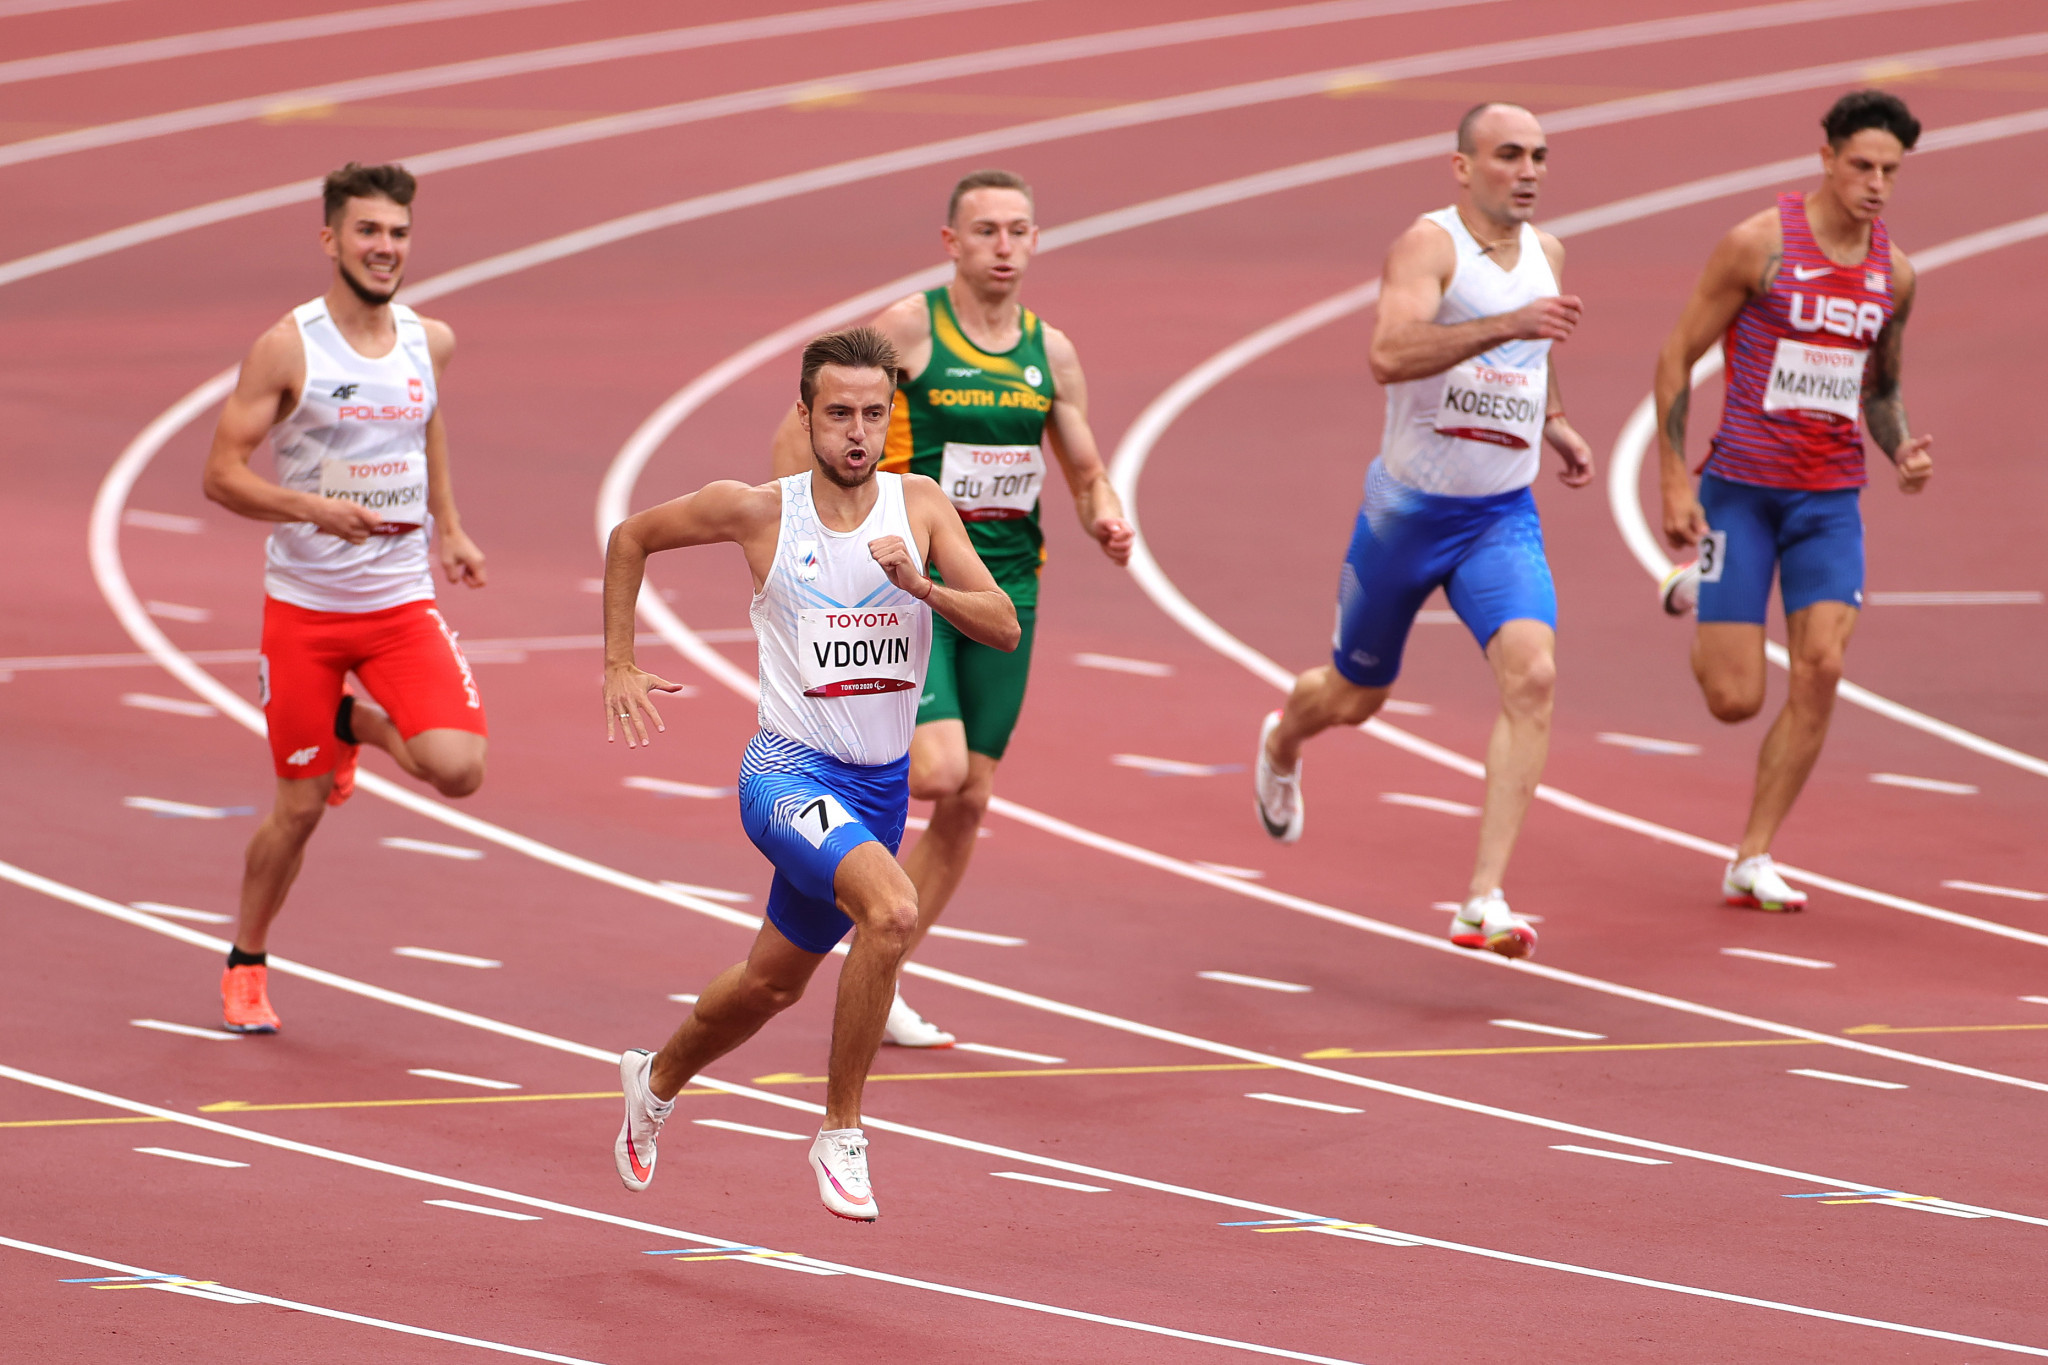 Andrei Vdovin broke his own world record in the men's T37 400m, earning gold with a time of 49.34 seconds ©Getty Images